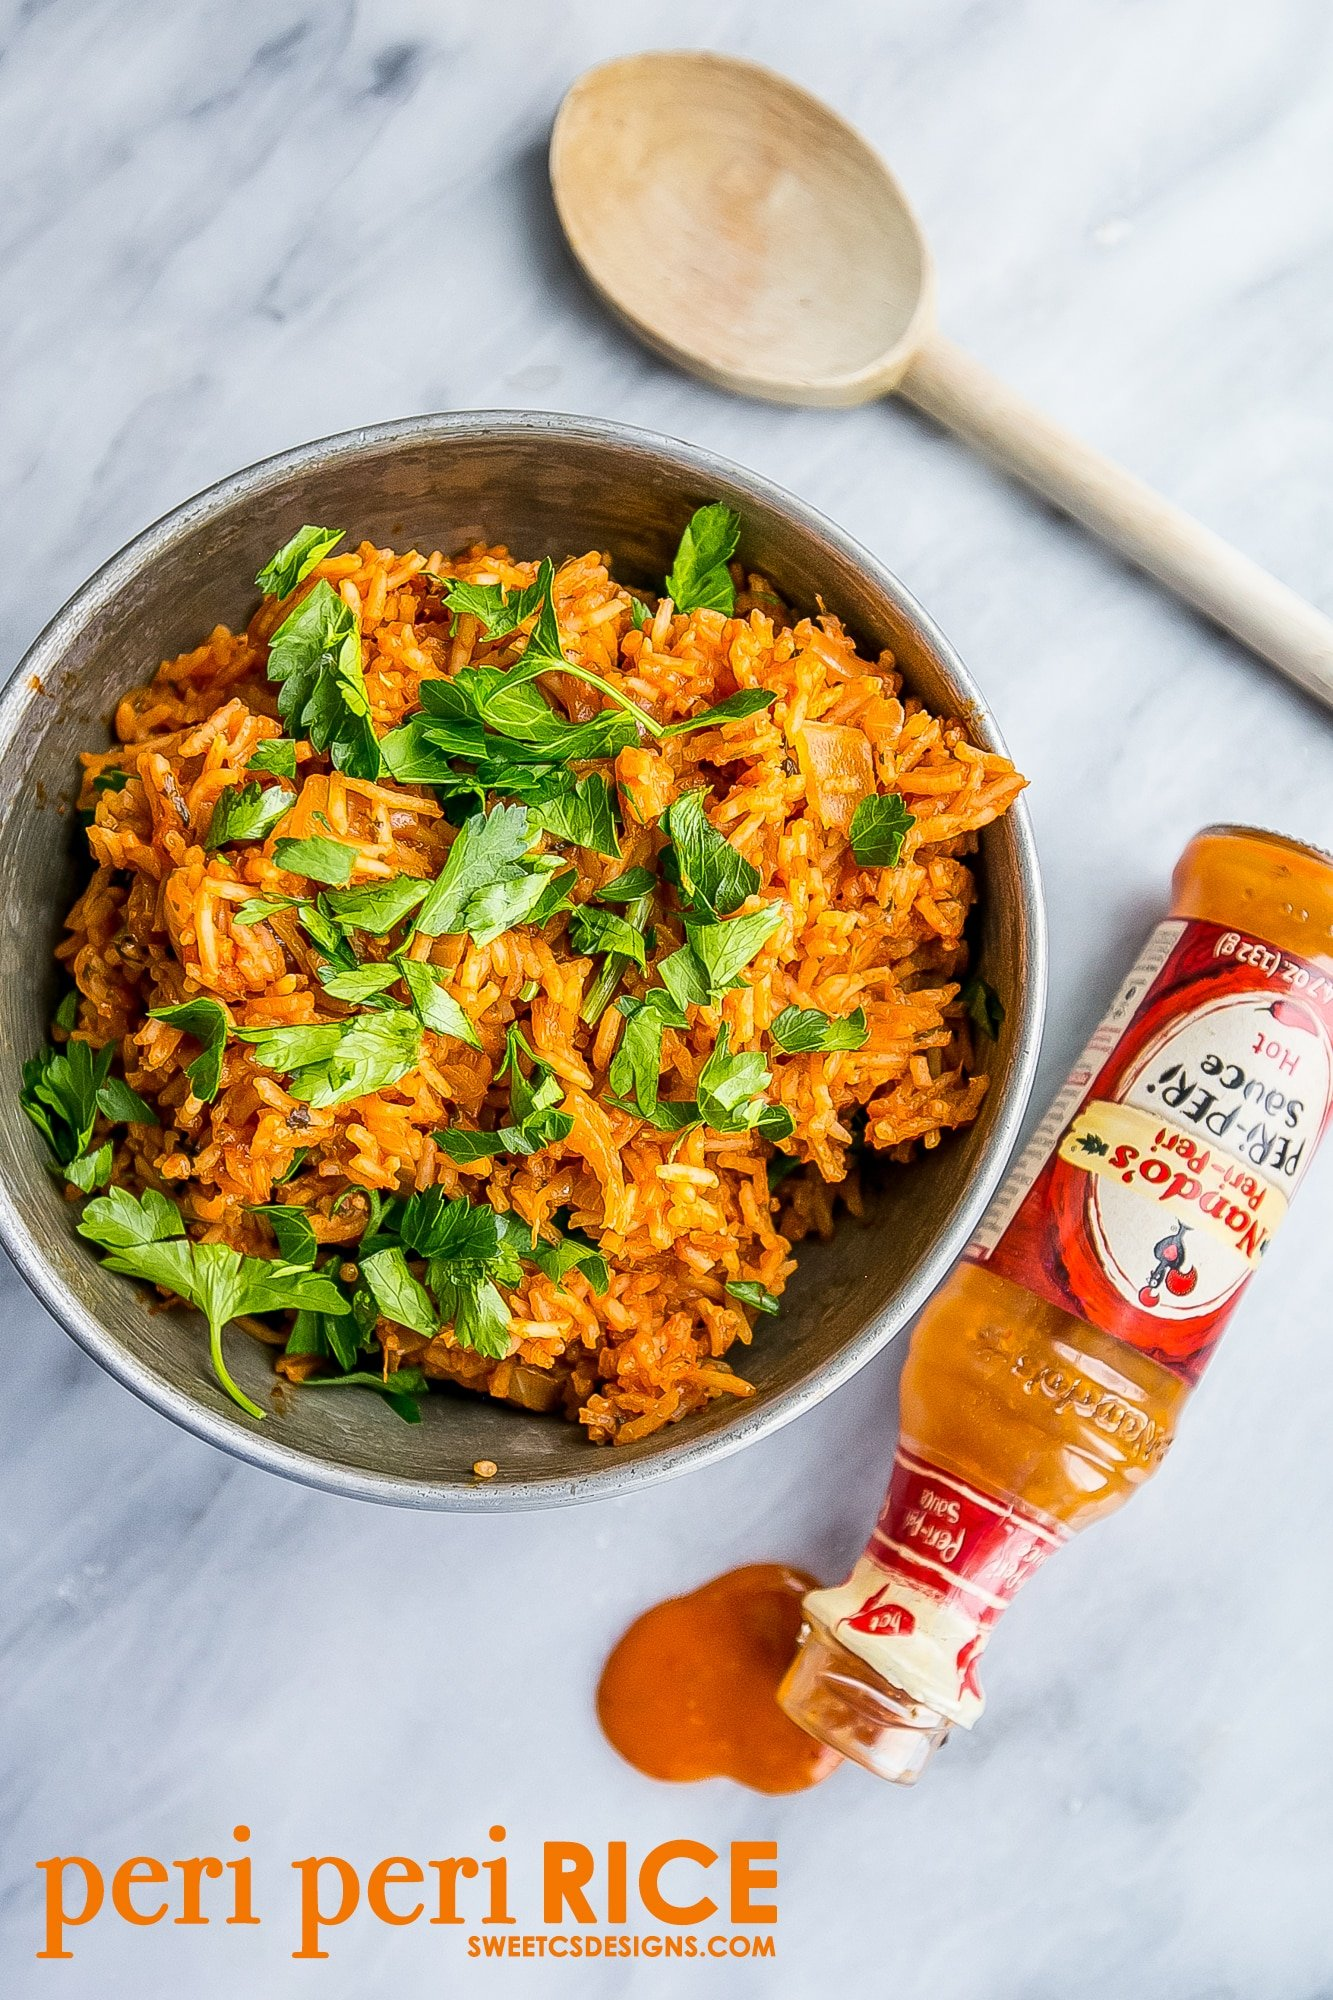 Nandos spicy peri peri rice at home - so easy and delicious!